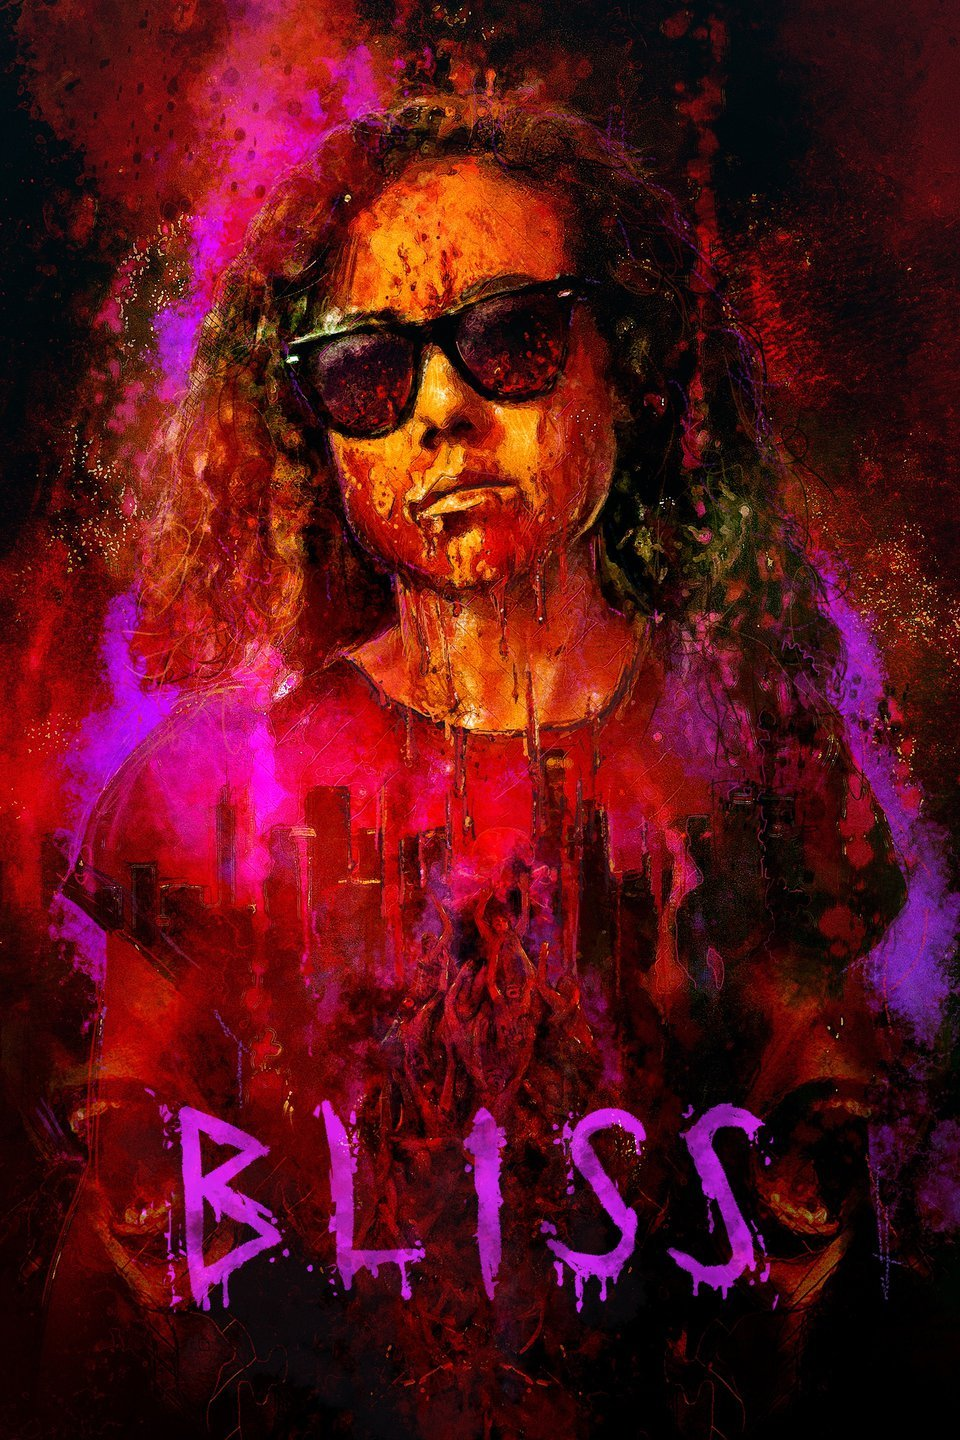 A brilliant painter facing the worst creative block of her life turns to anything she can to complete her masterpiece, spiraling into a hallucinatory hellscape of drugs, sex, and murder in the sleazy underbelly of Los Angeles.